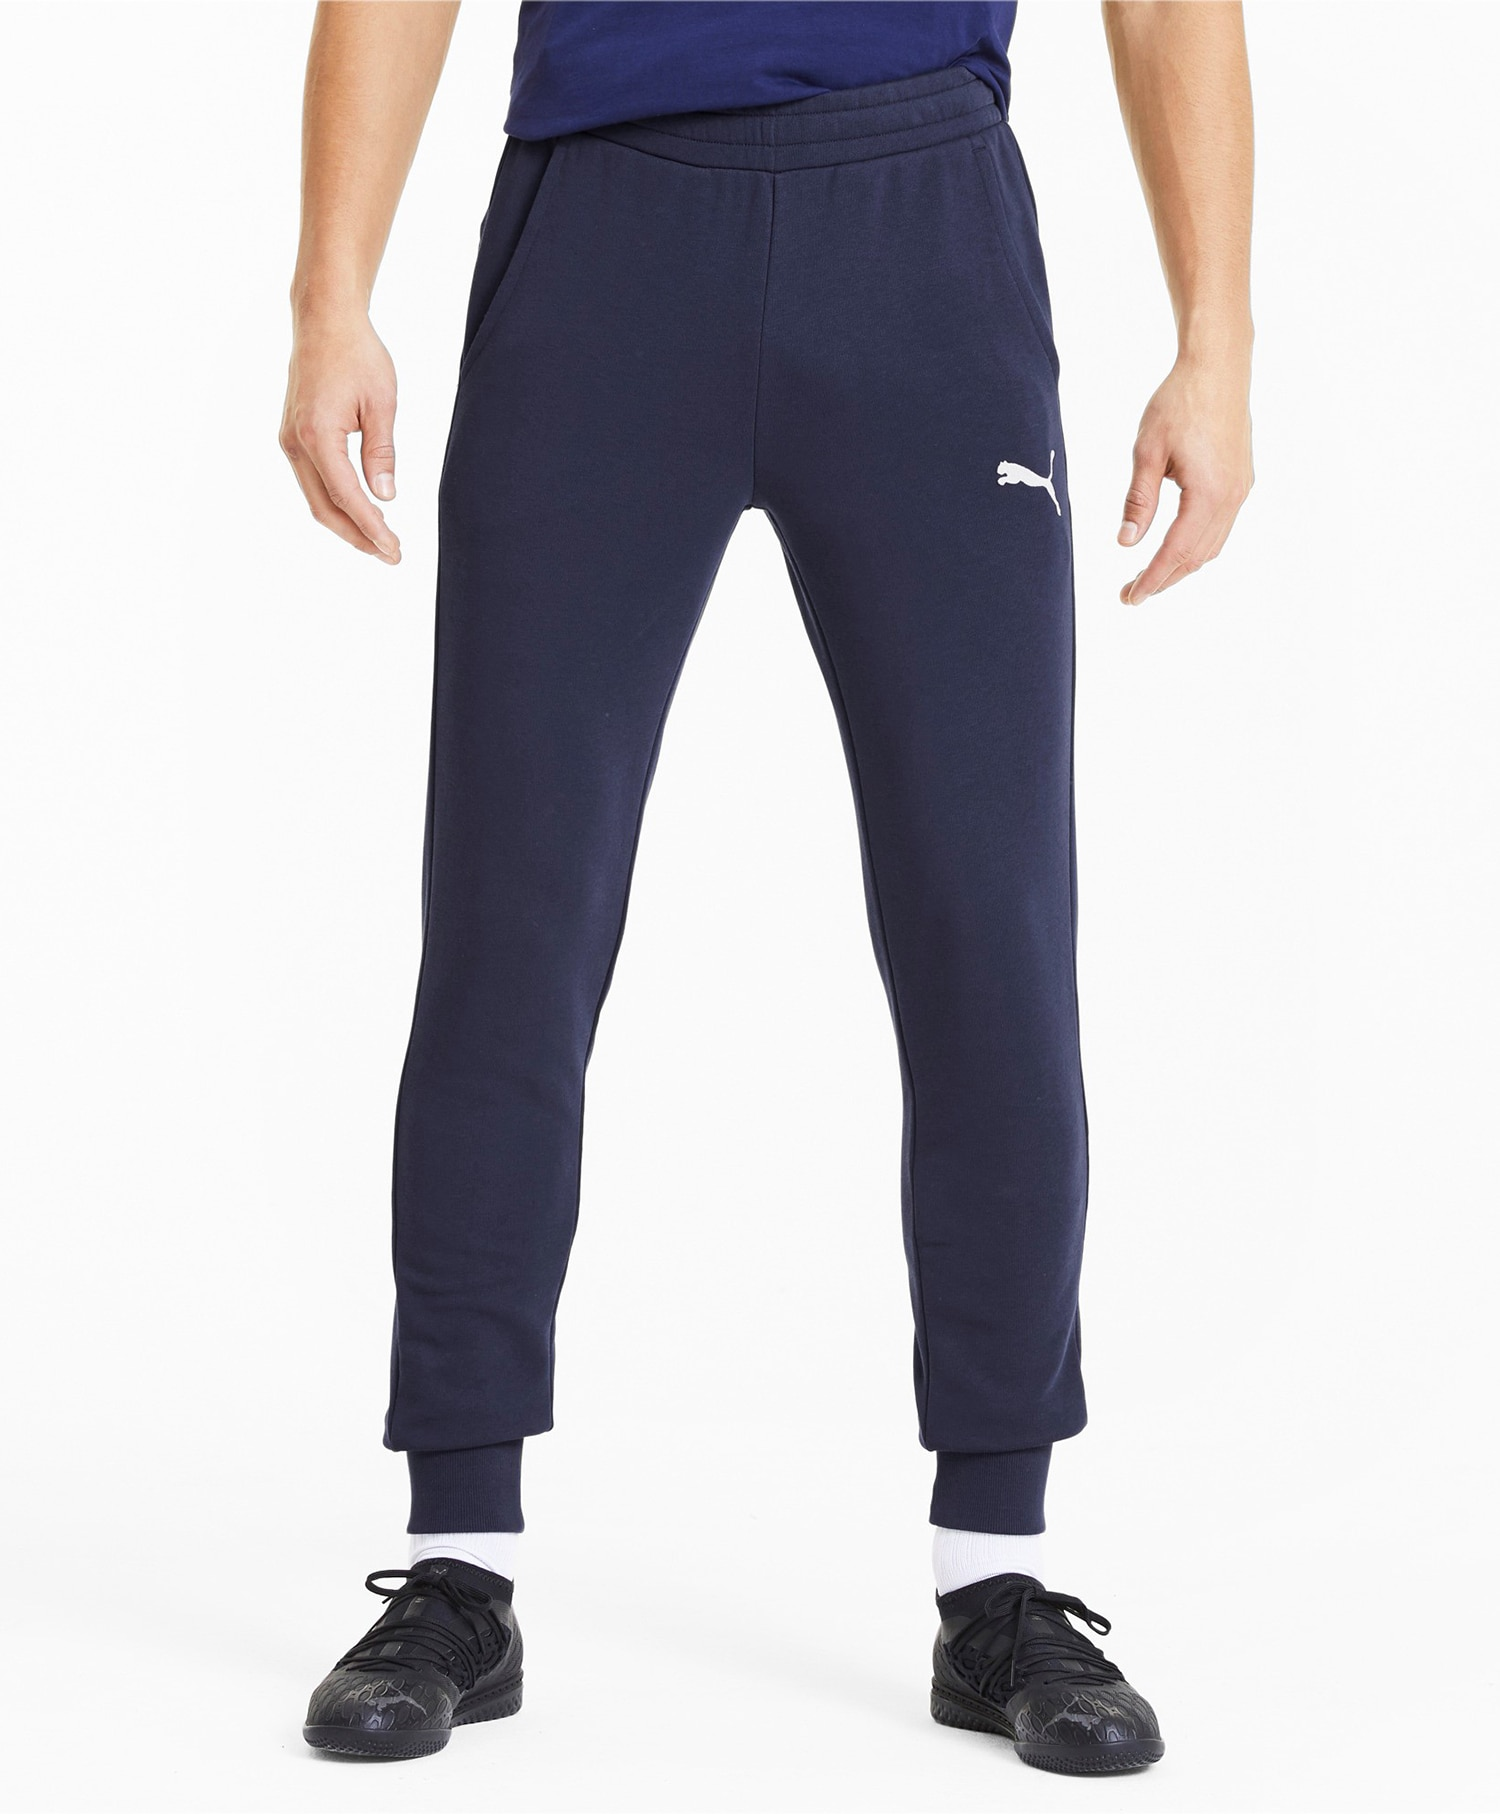 Puma Teamgoals Pants